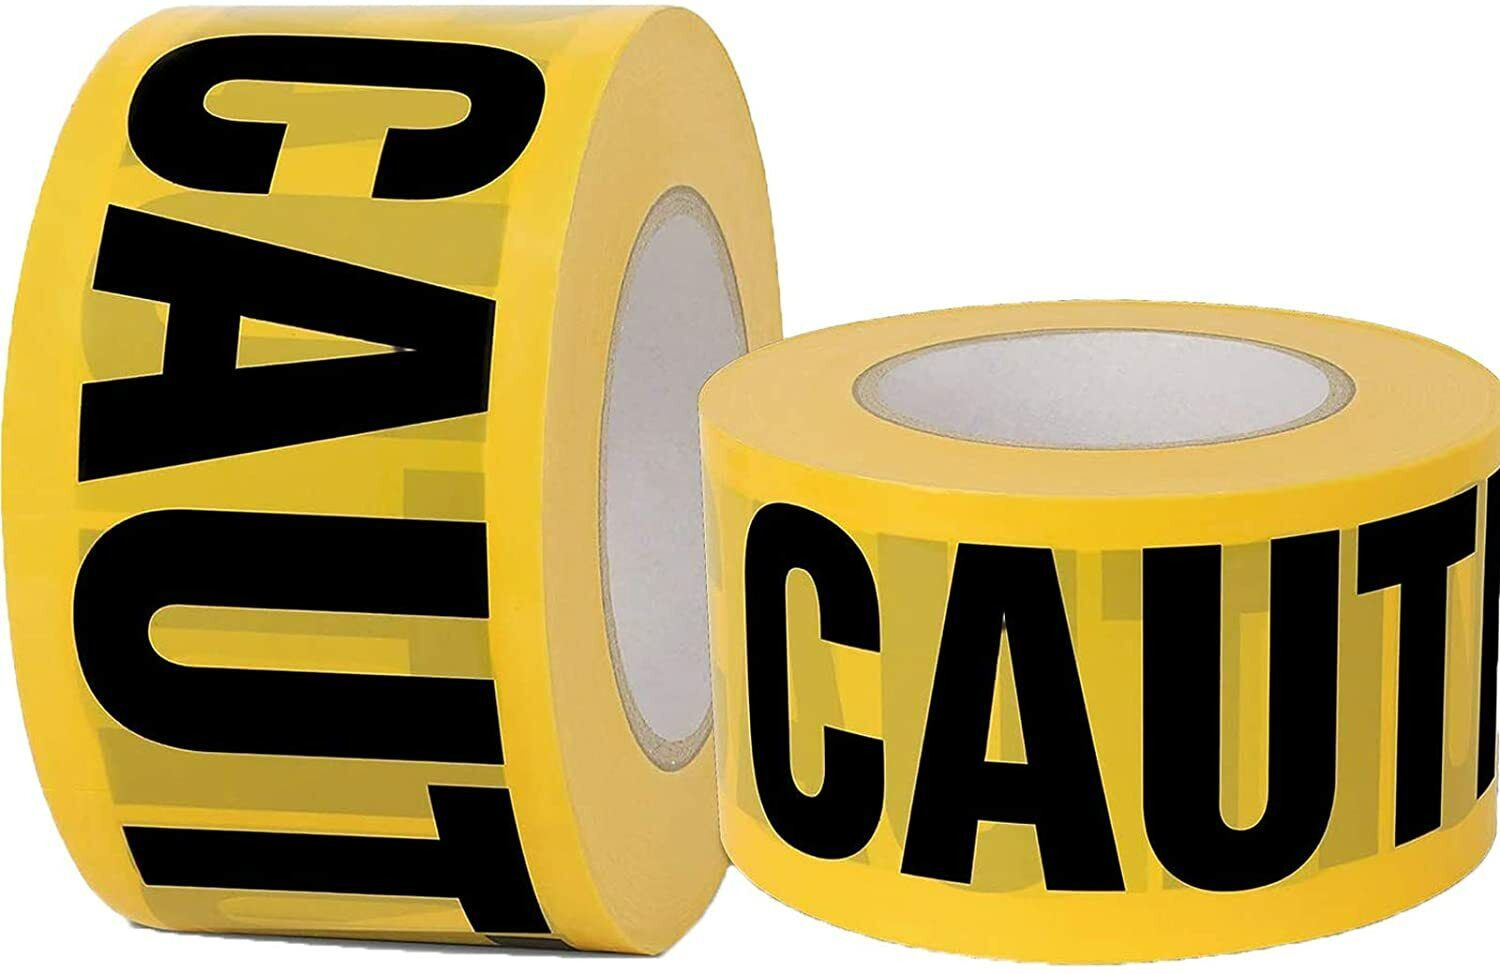 CAUTION WARNING 3″ x 330′ Barricade Ribbon Bright Yellow Safety Tape (4 Rolls) Business & Industrial